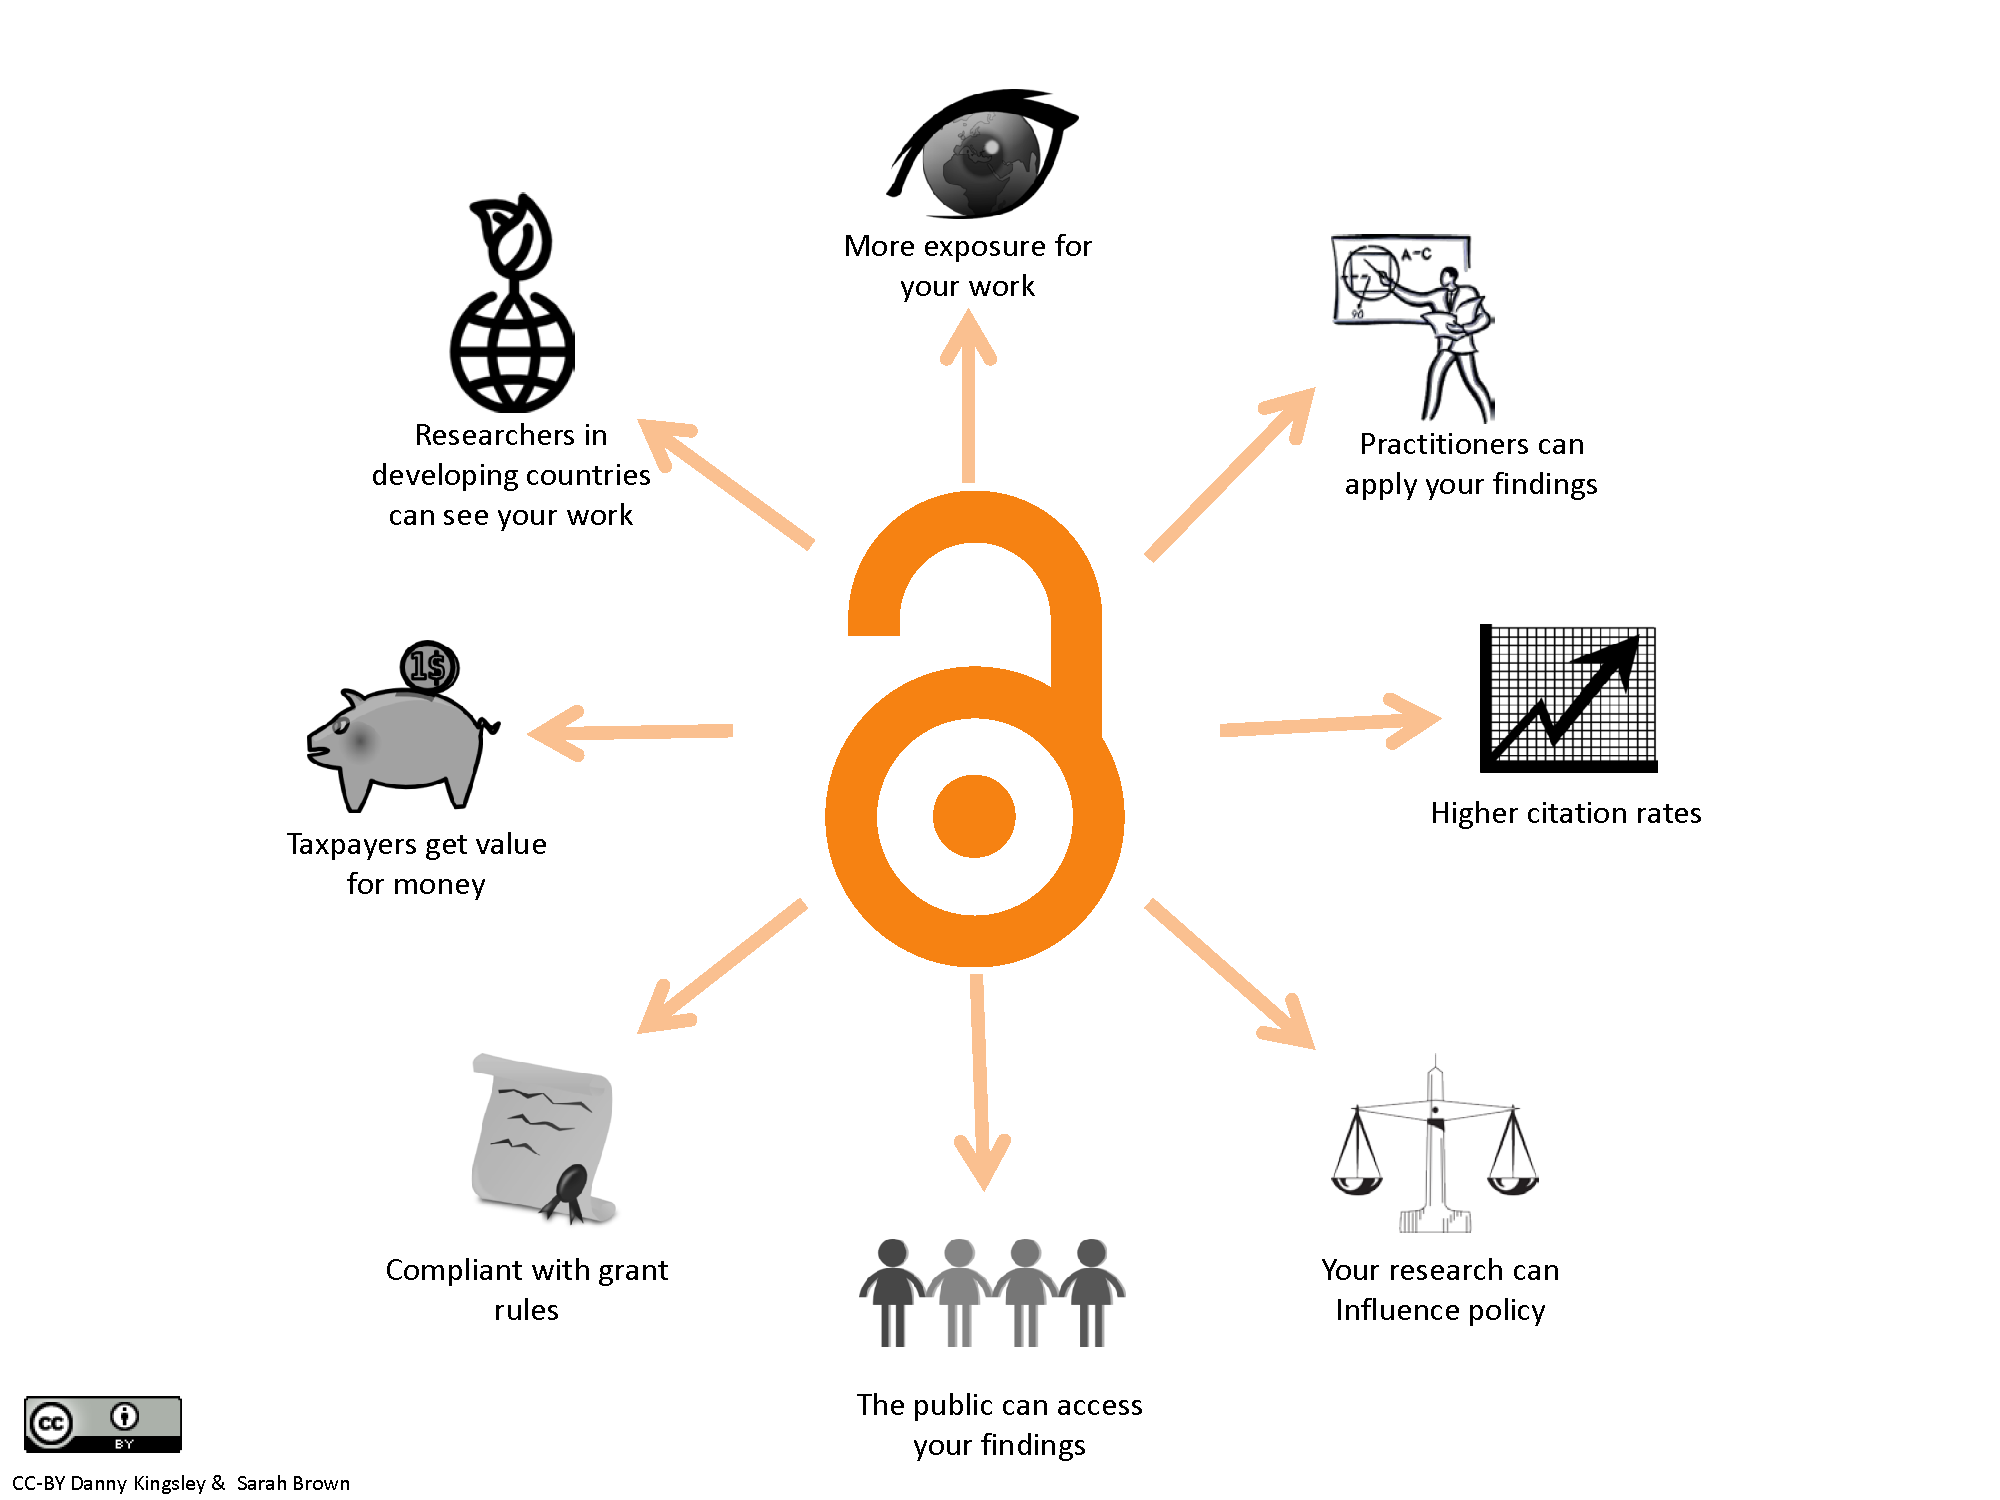 Image of the benefits of Open Access